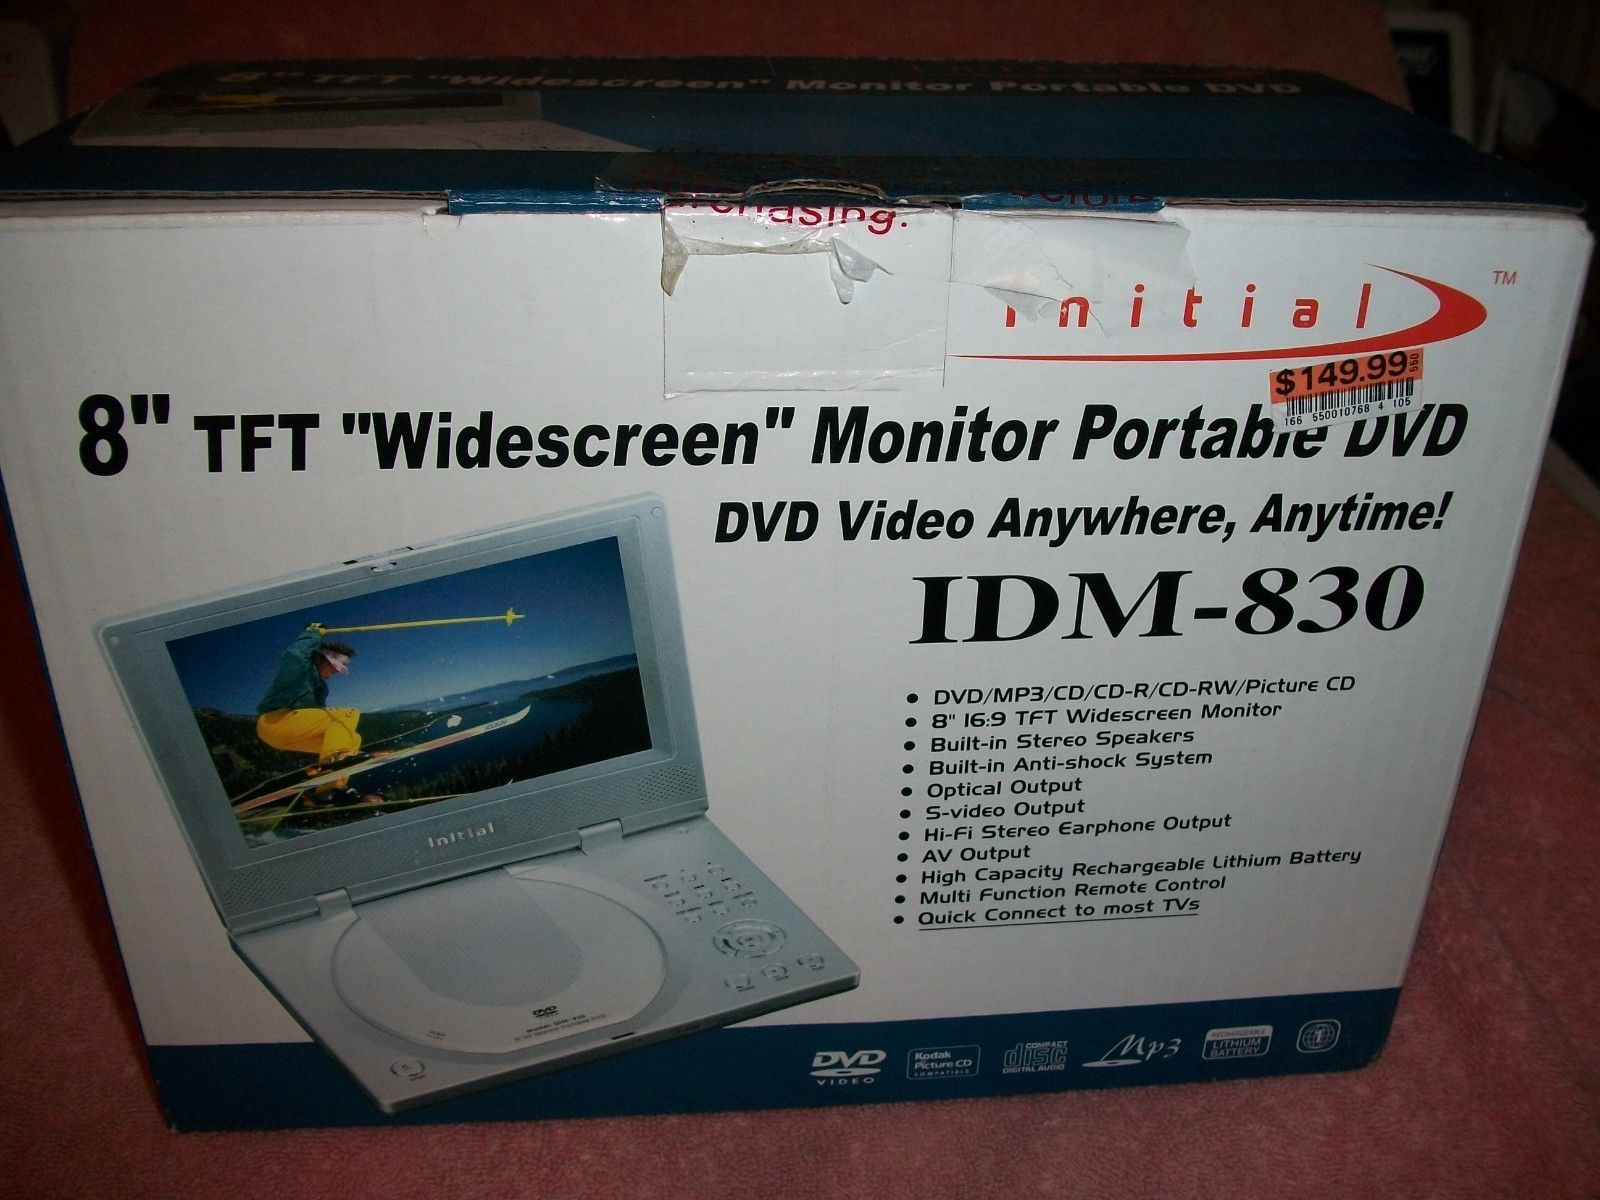 manuals and resources initial 8in tft widescreen monitor portable rh pinterest com Initial DVD Player Battery Initial DVD Player Battery